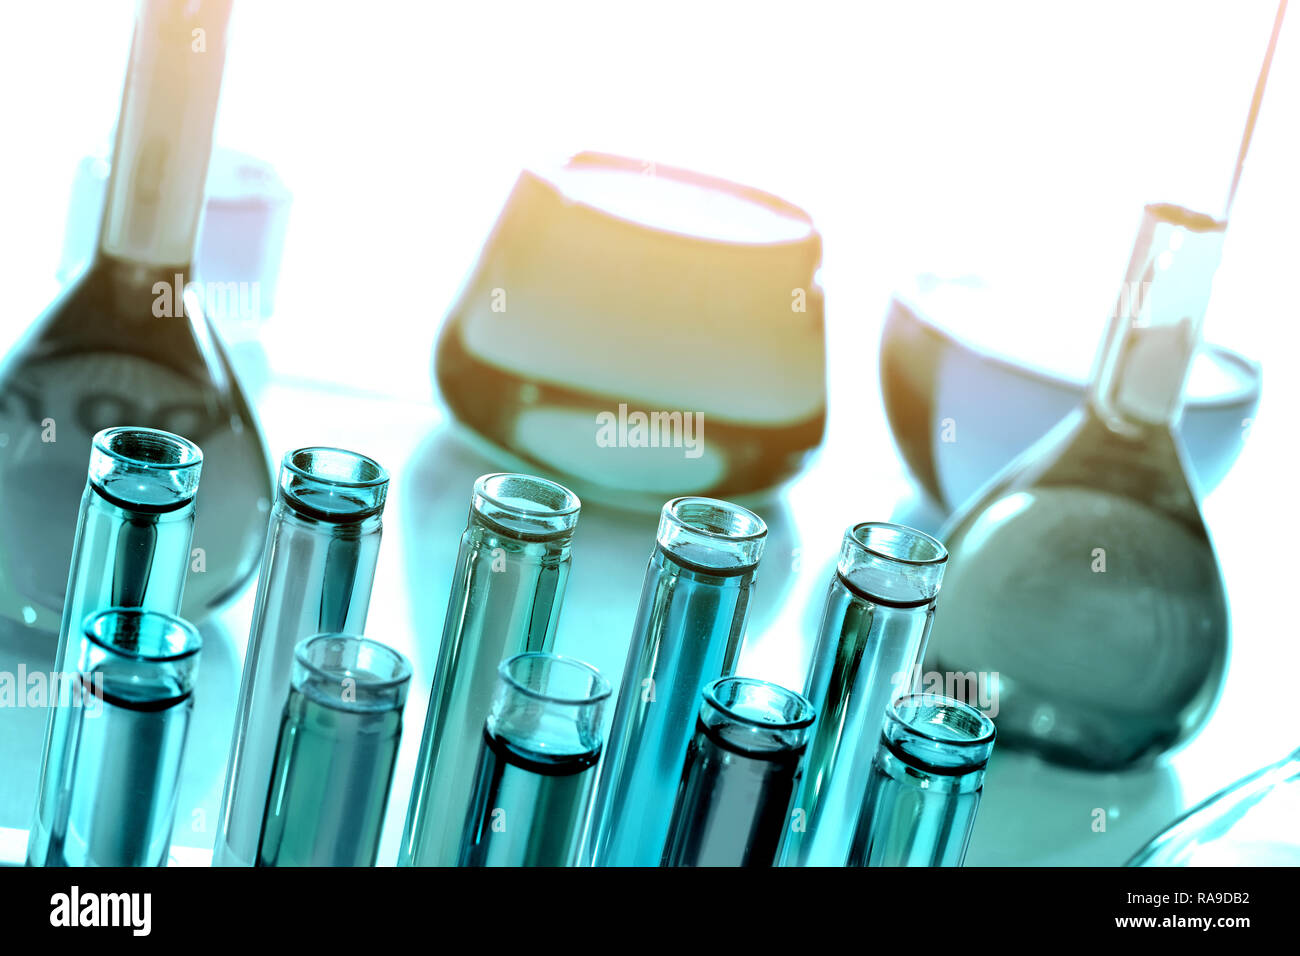 Laboratoy glassware with chemicals and reagents, chemistry science - Stock Image